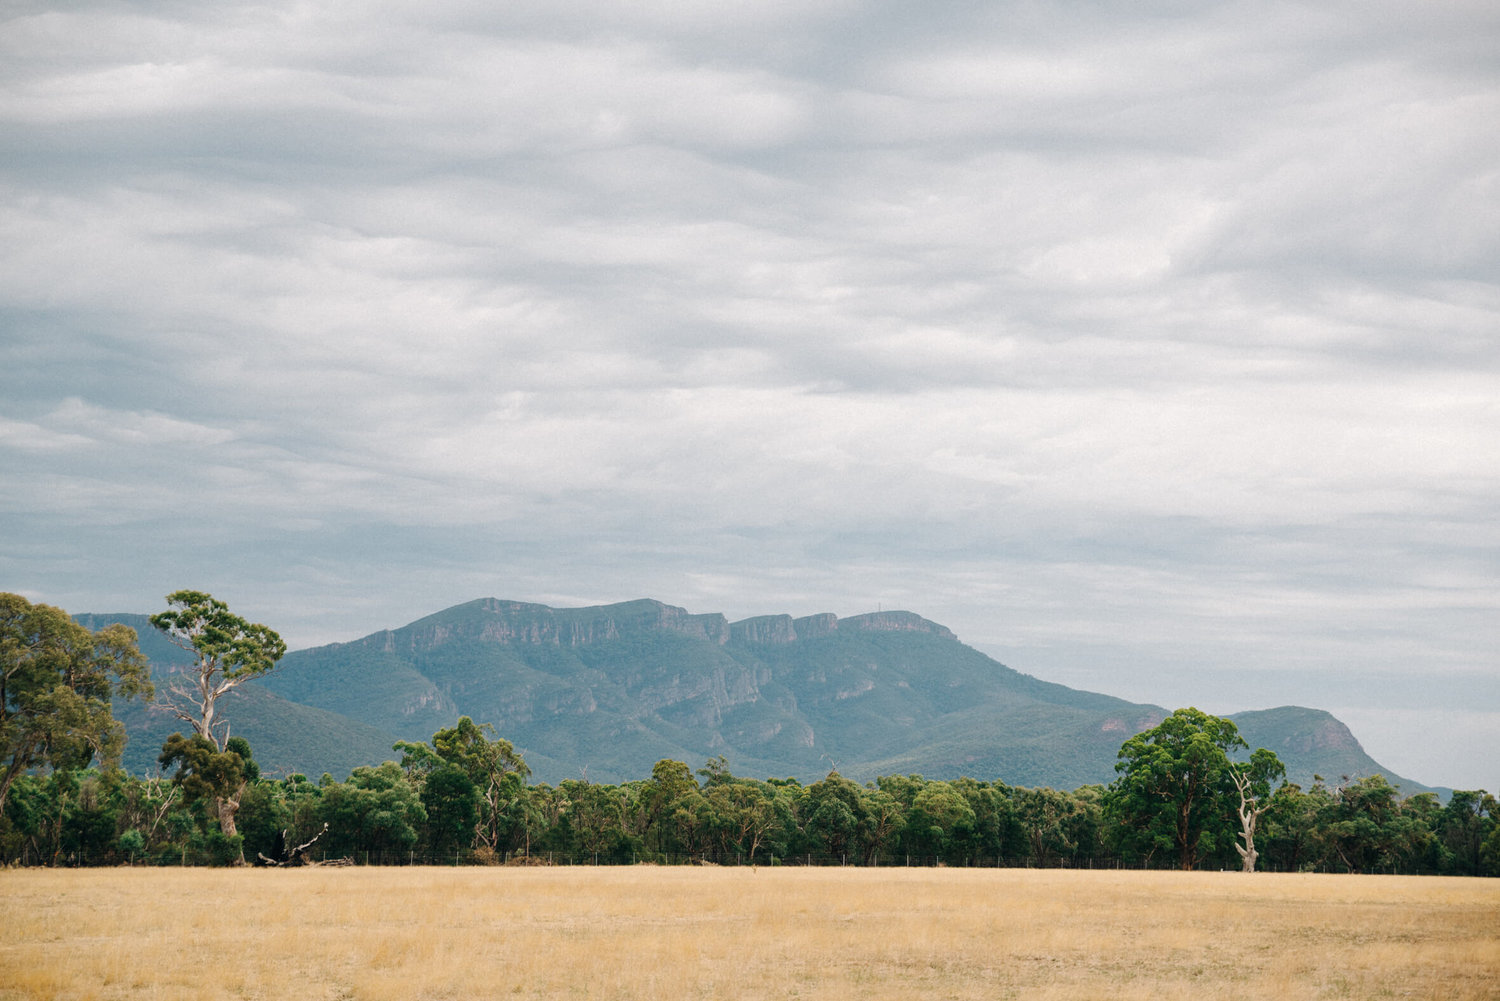 The lovely scenes of the Grampians mountain range. Photo by Arianna Leggiero